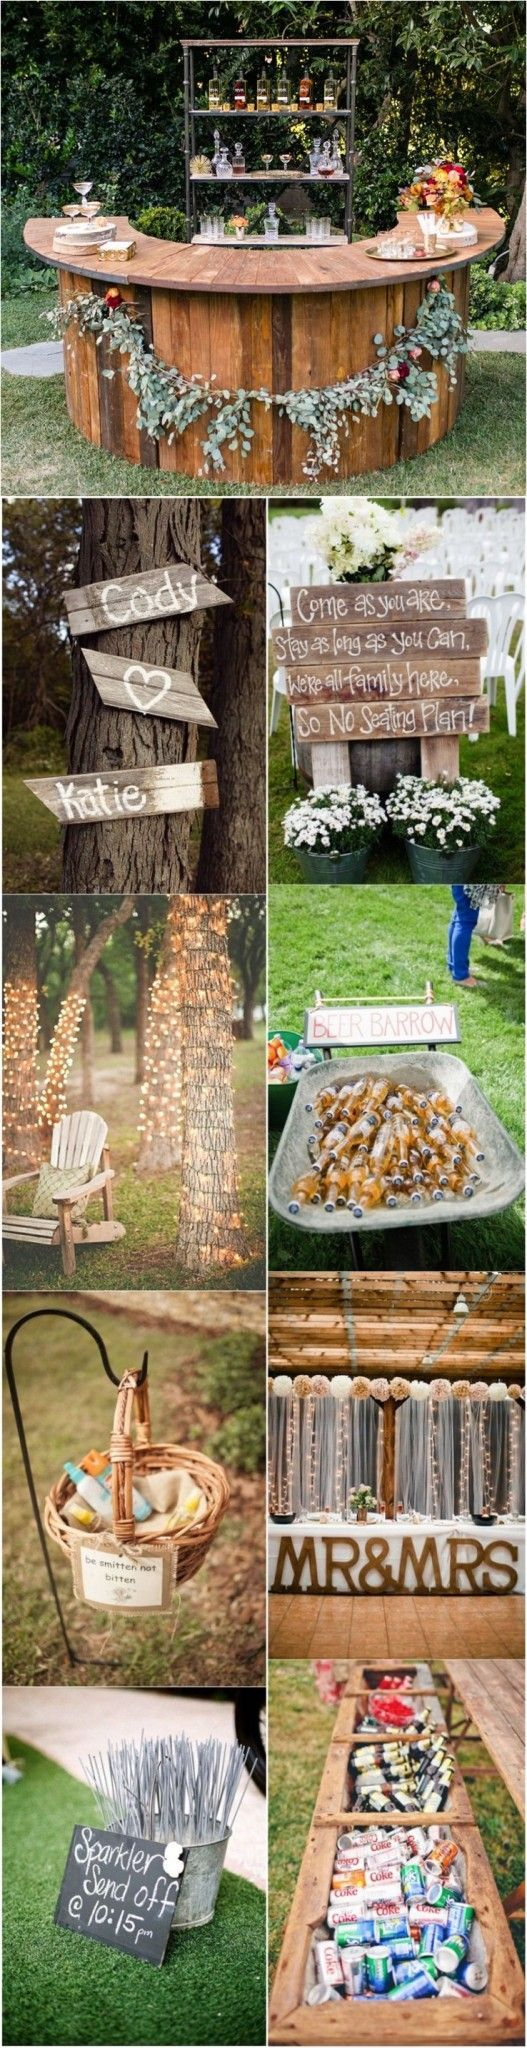 Wedding decorations using pallets october 2018  Genius Outdoor Wedding Ideas  Weddingideas Weddings and Wedding